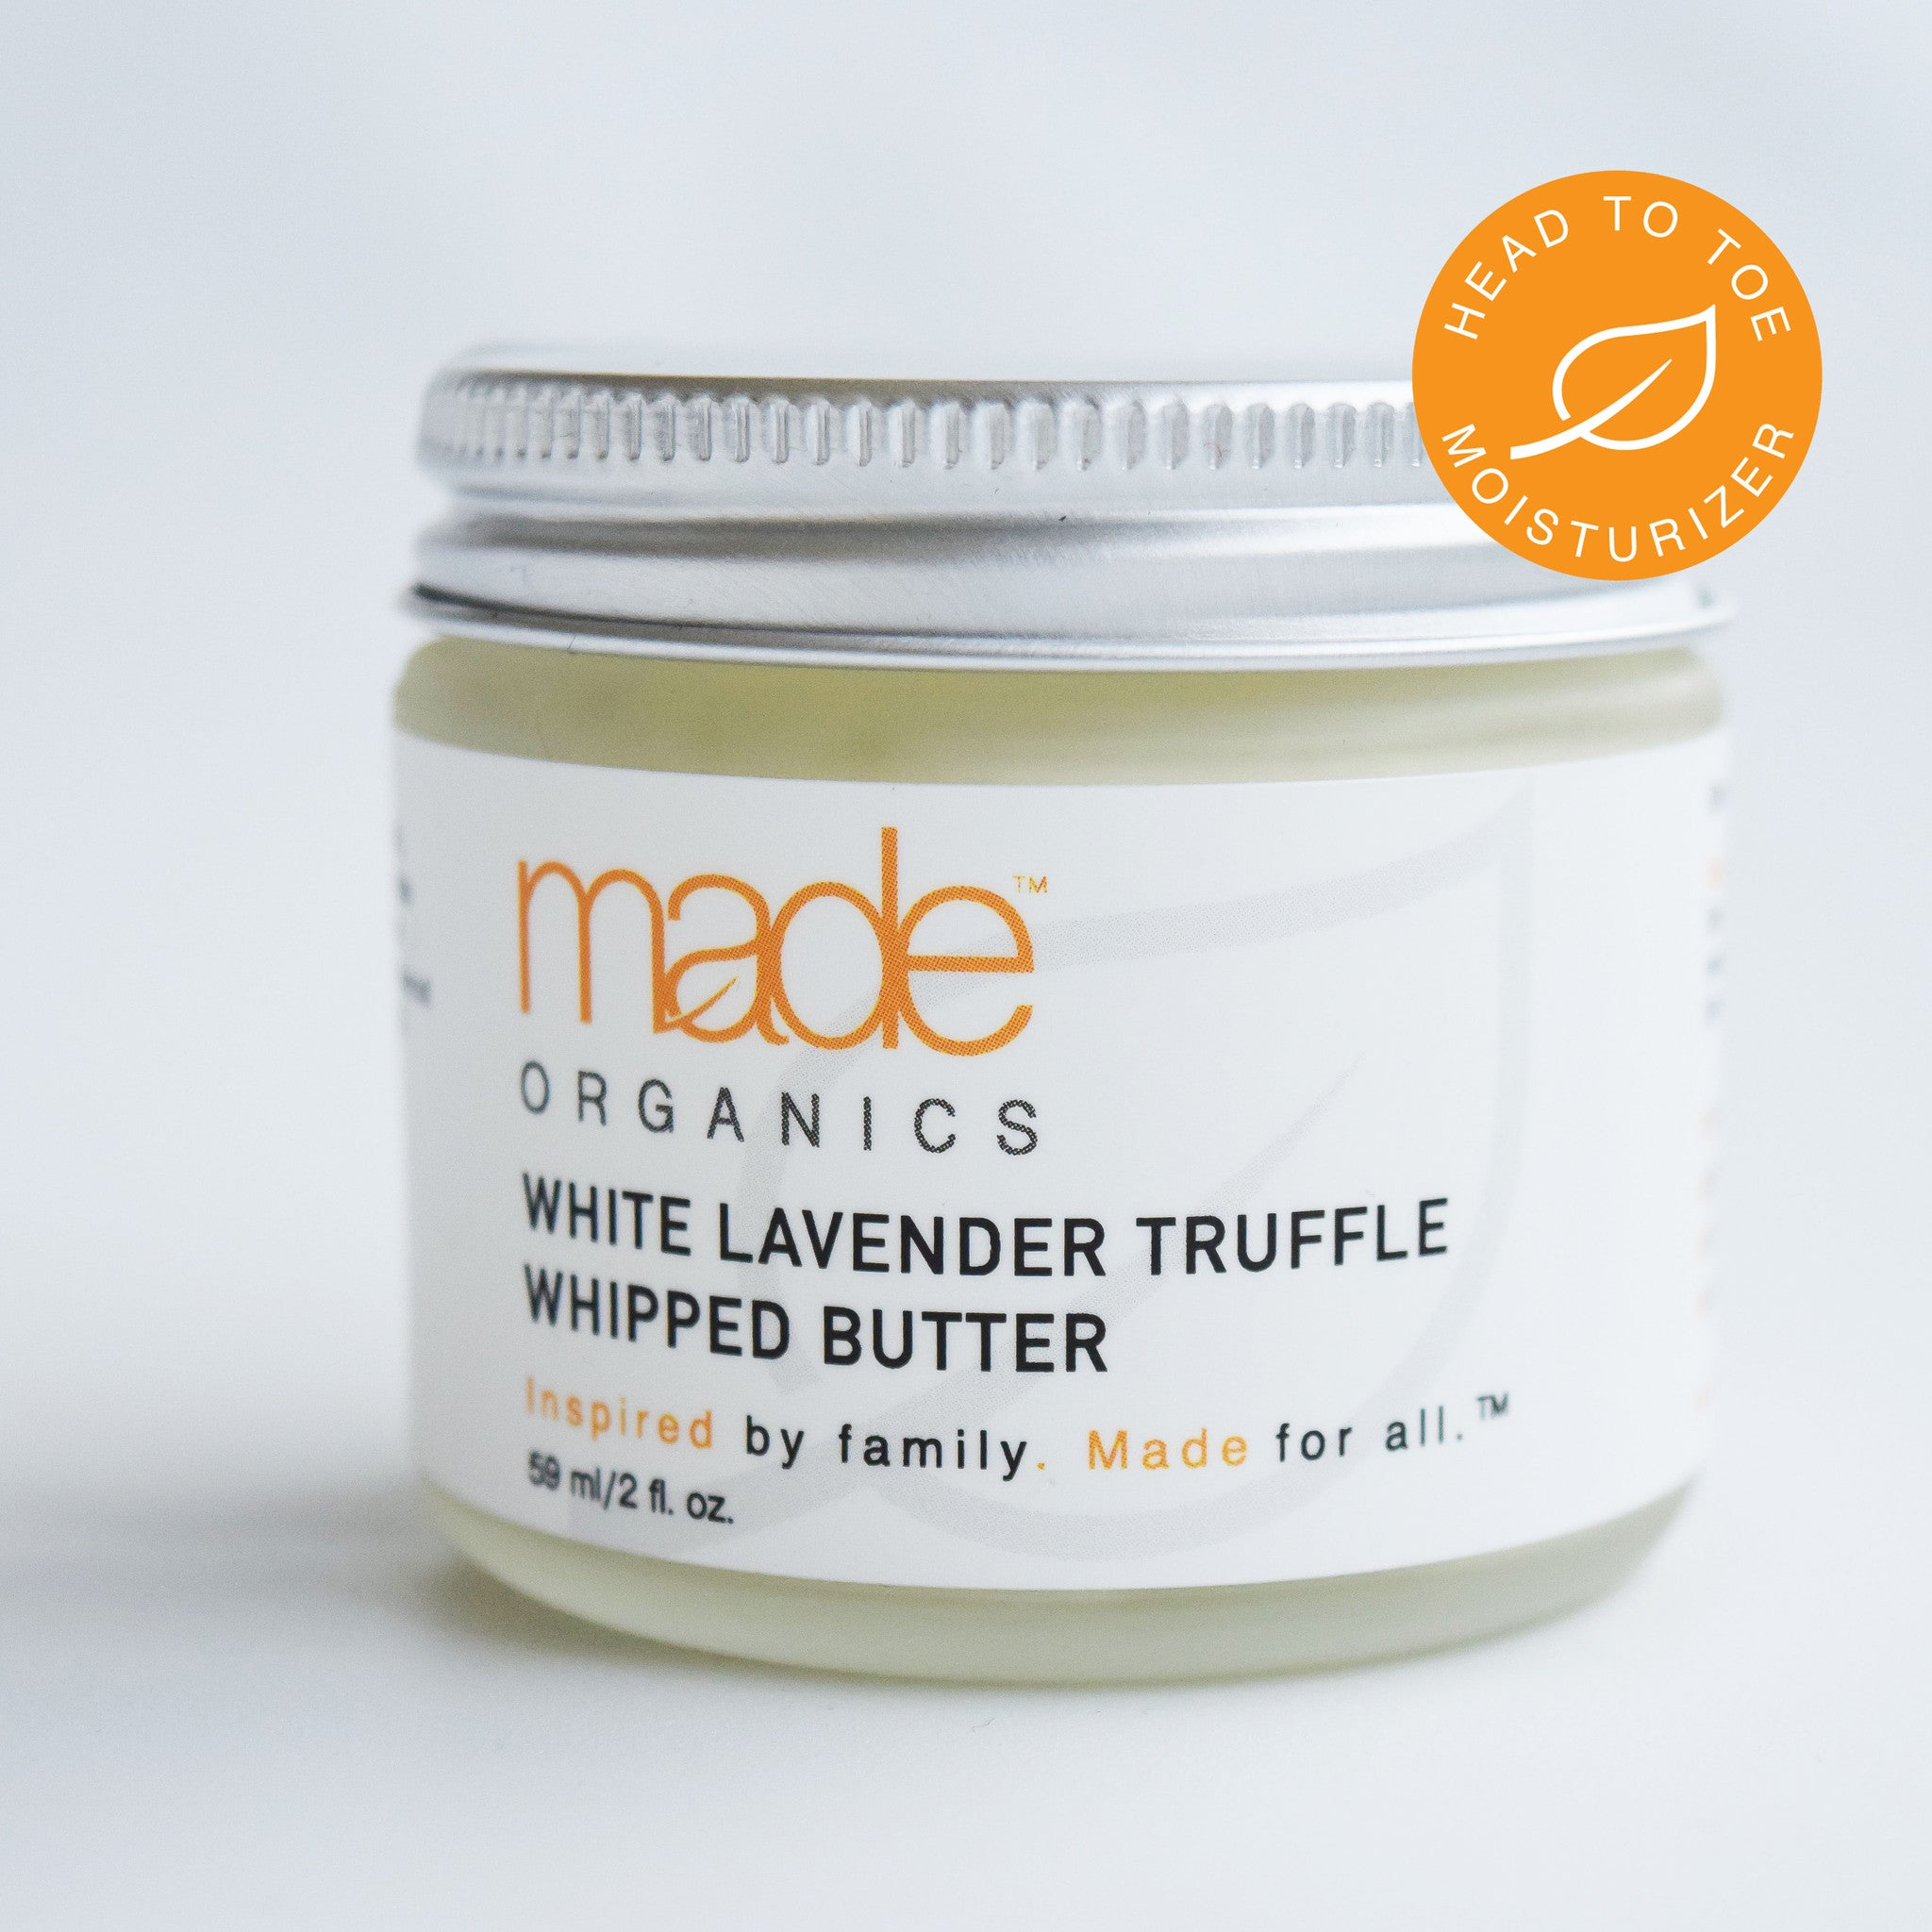 White Lavender Truffle Whipped Butter Head To Toe